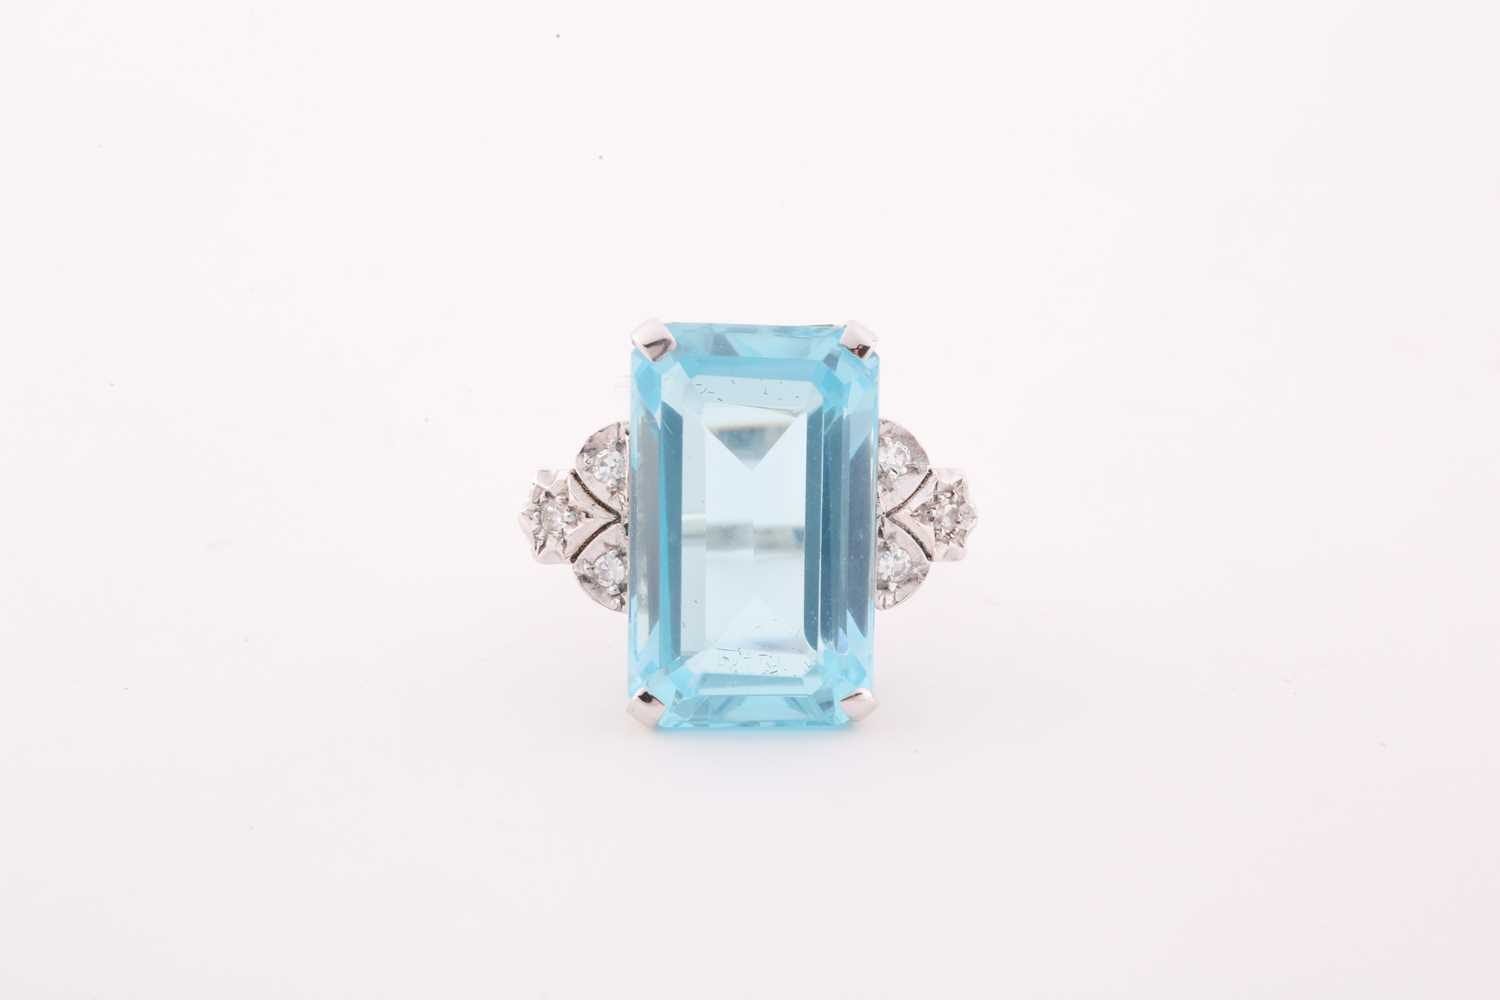 A diamond and blue topaz cocktail ring, set with a mixed rectangular-cut topaz, measuring